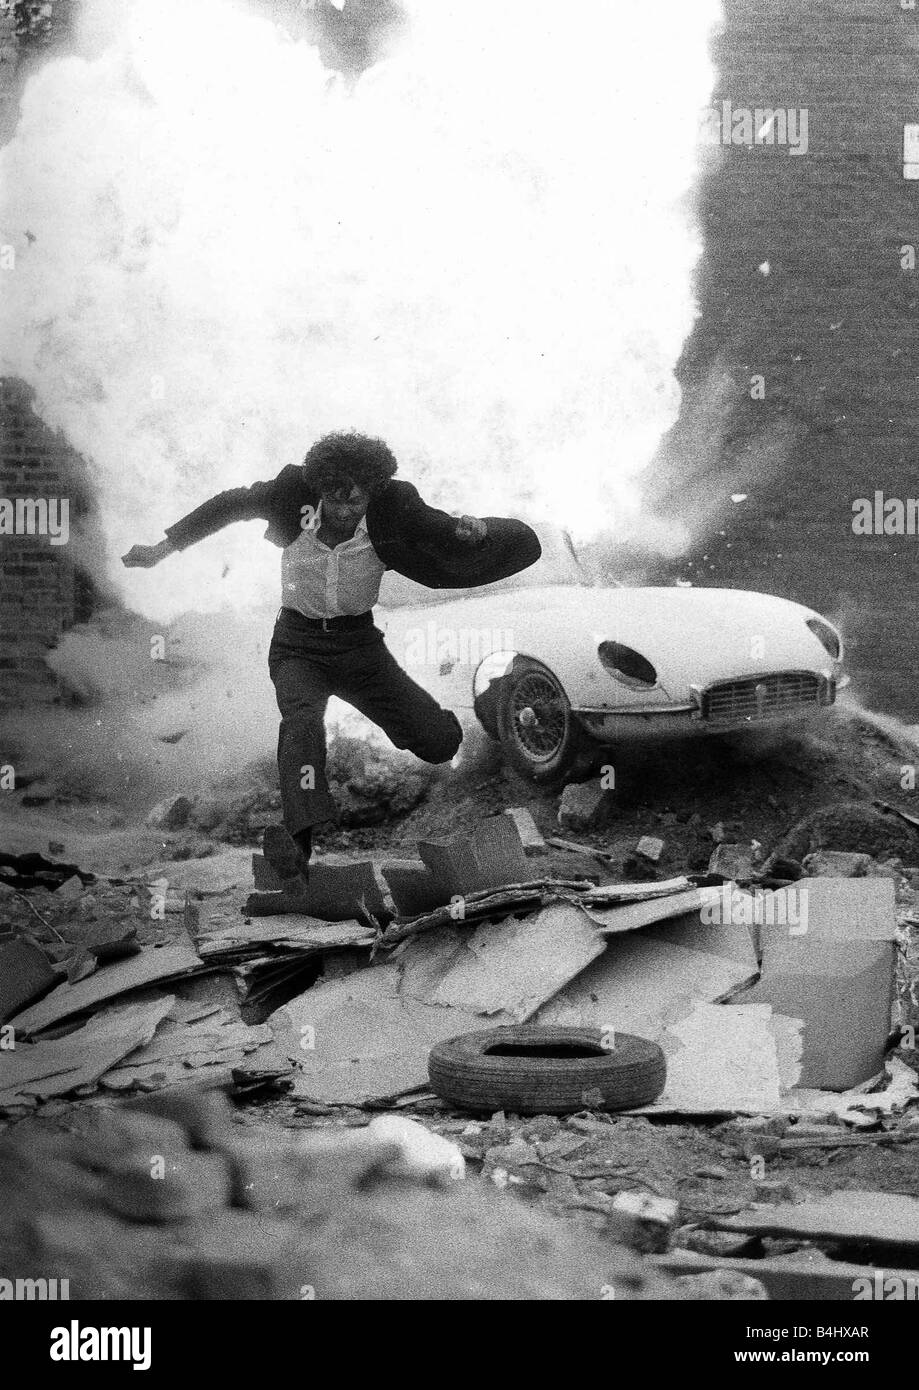 Actor Martin Shaw as Ray Doyle in The Professionals 1978 television programme running away from an exploding E Type - Stock Image